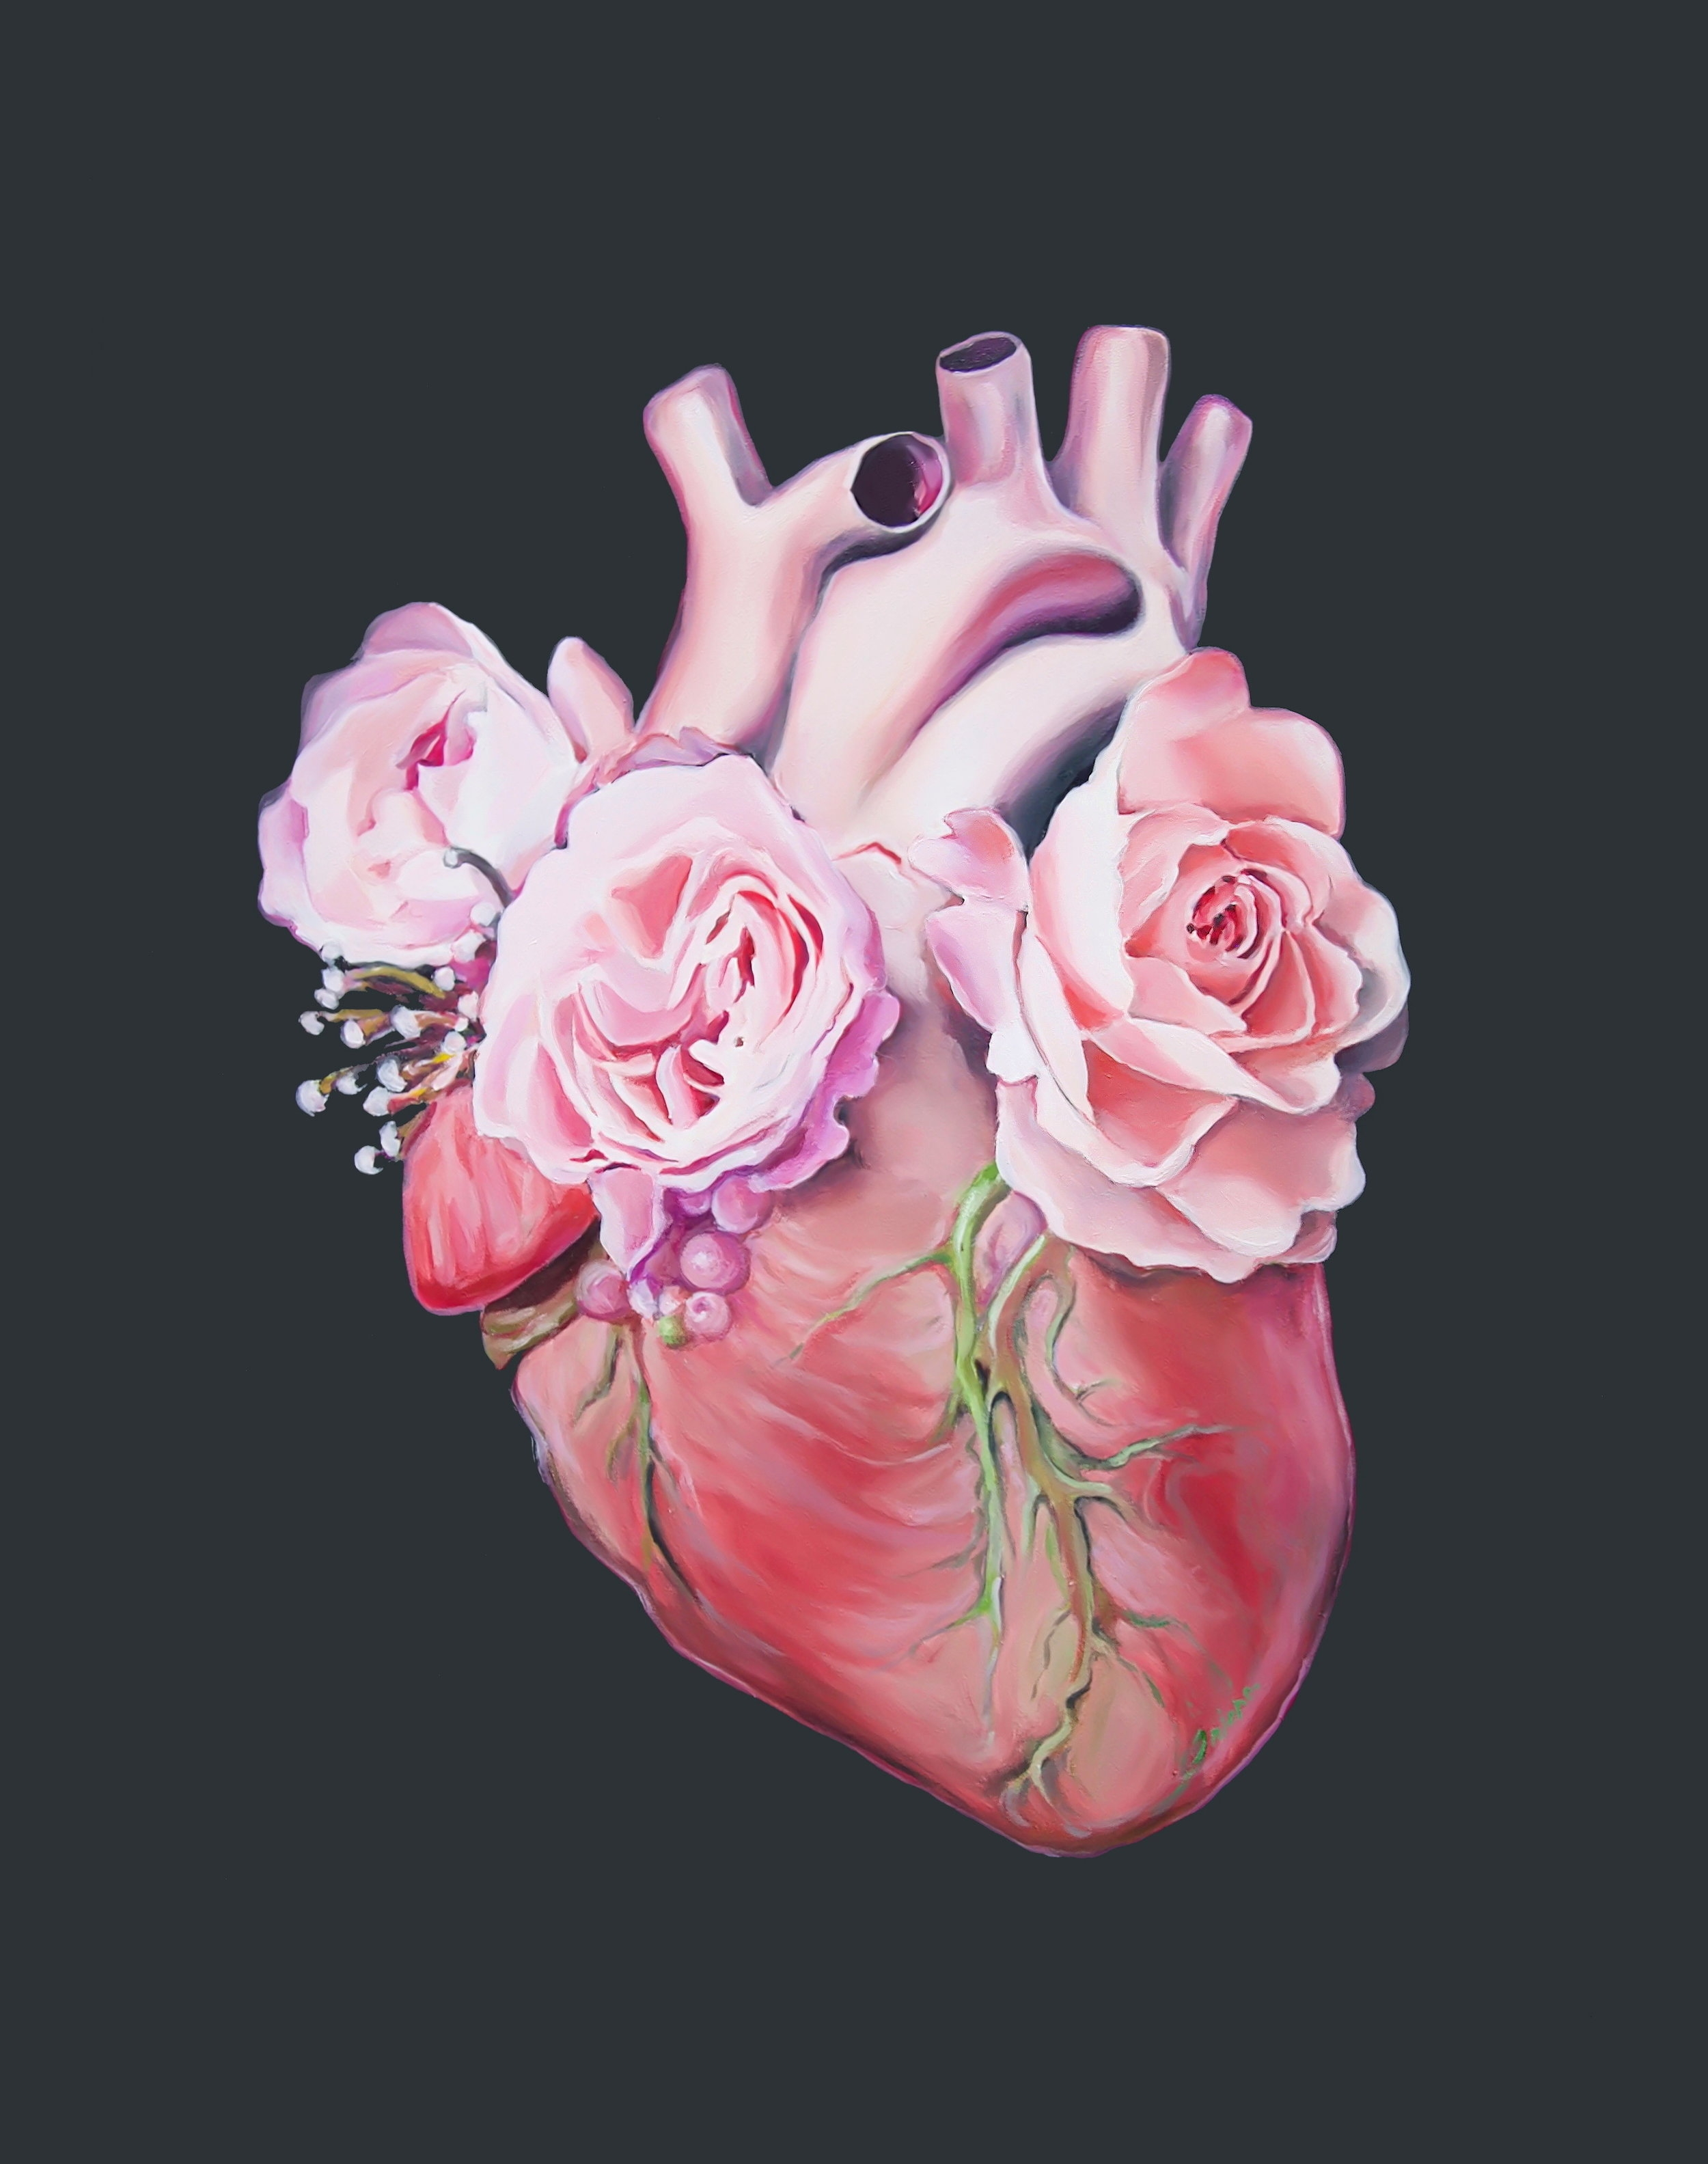 Floral Heart II (ITEM NO: 016)  Print Size: 8x10 inches  $12.50 Wholesale at 50% off  $25 RRP